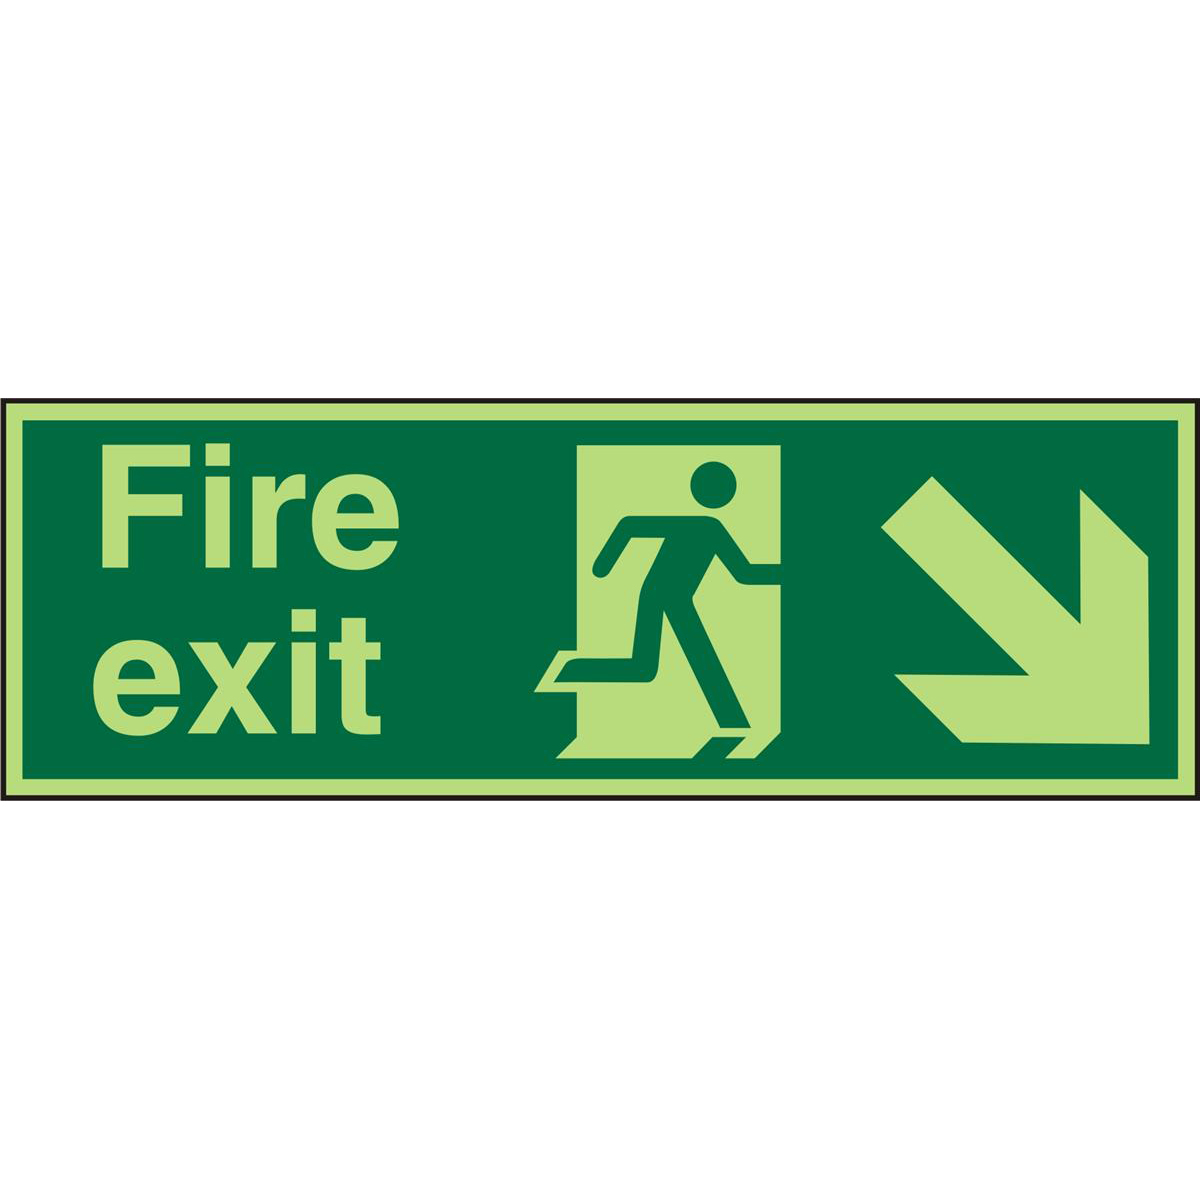 Photolum Sign 2mm 300x100 FireExit Man Run Right&Arrow brhc Ref PACSP123300x100 Up to 10 Day Leadtime